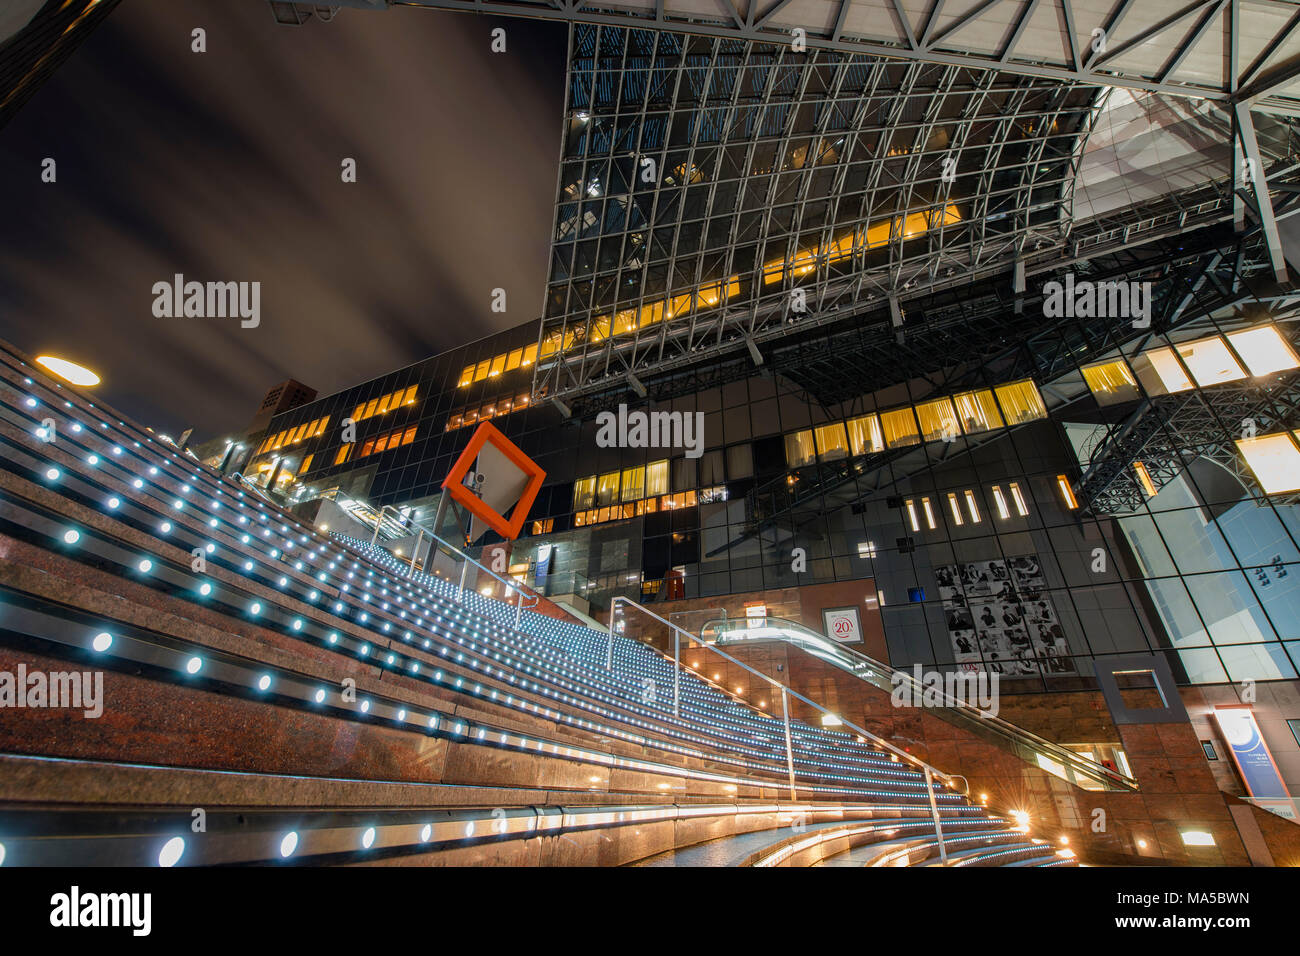 L'Asie, Japon, Nippon, Nihon, Kyoto, Kyoto Station Photo Stock